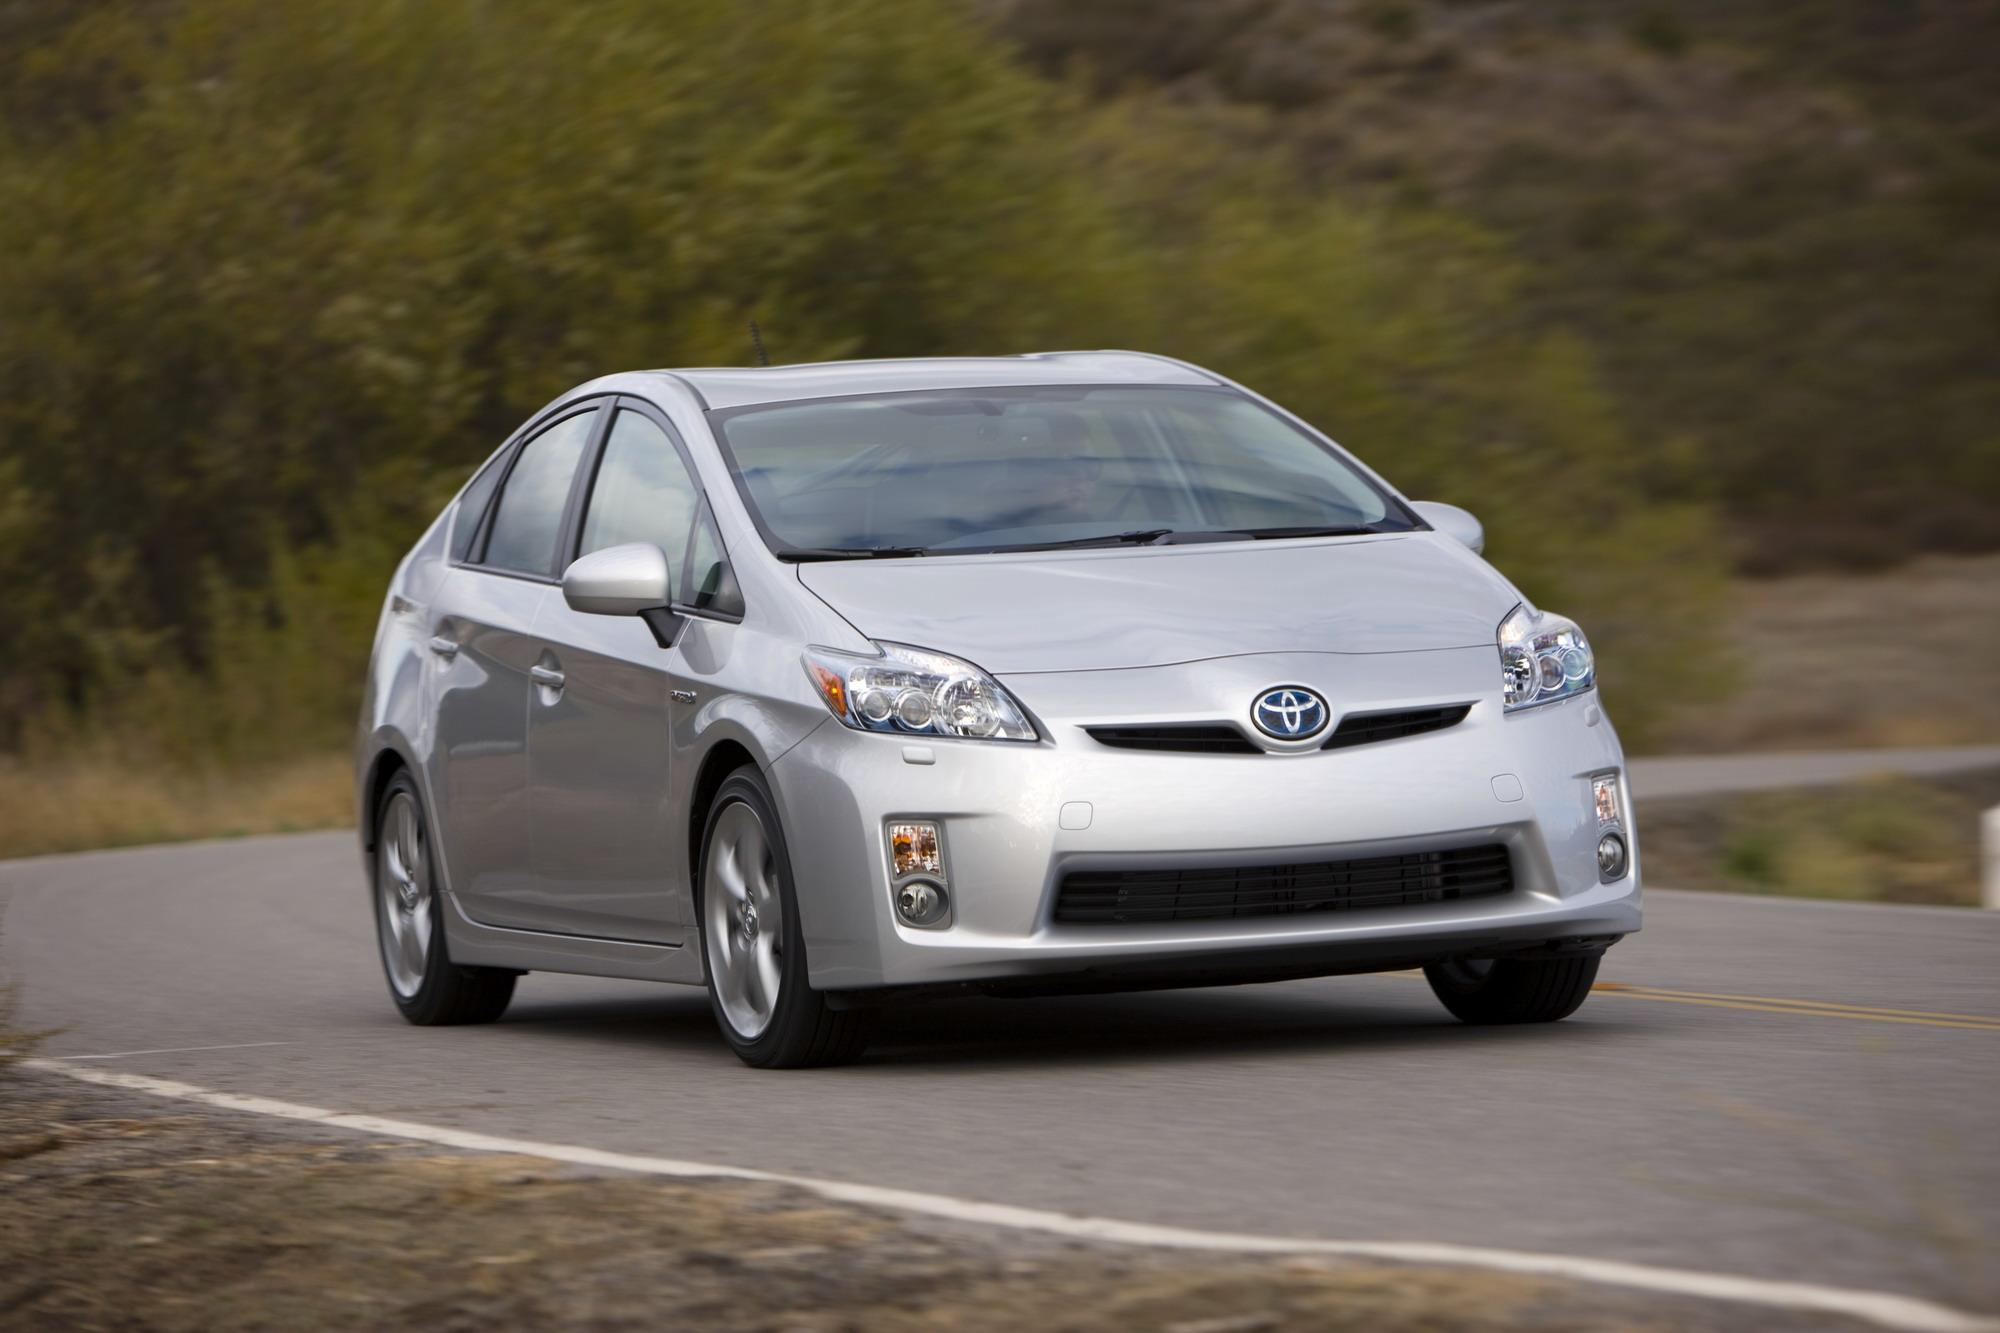 2010 Toyota Prius Prices Announced Top Speed